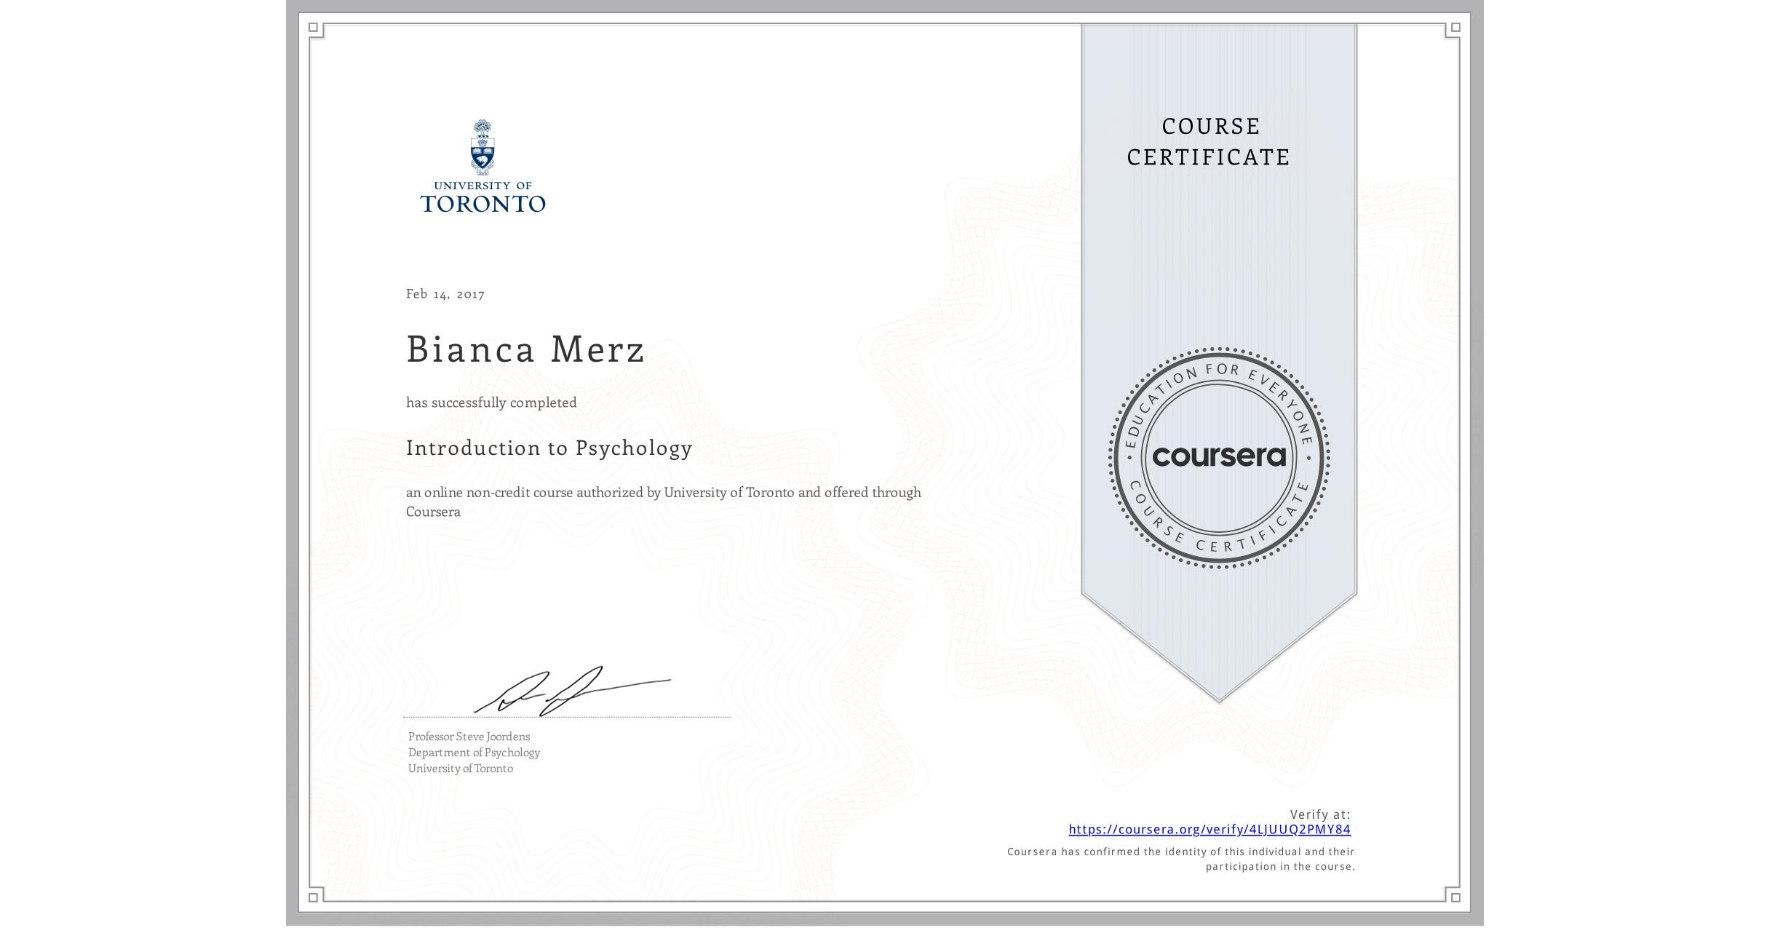 View certificate for Bianca Merz, Introduction to Psychology, an online non-credit course authorized by University of Toronto and offered through Coursera